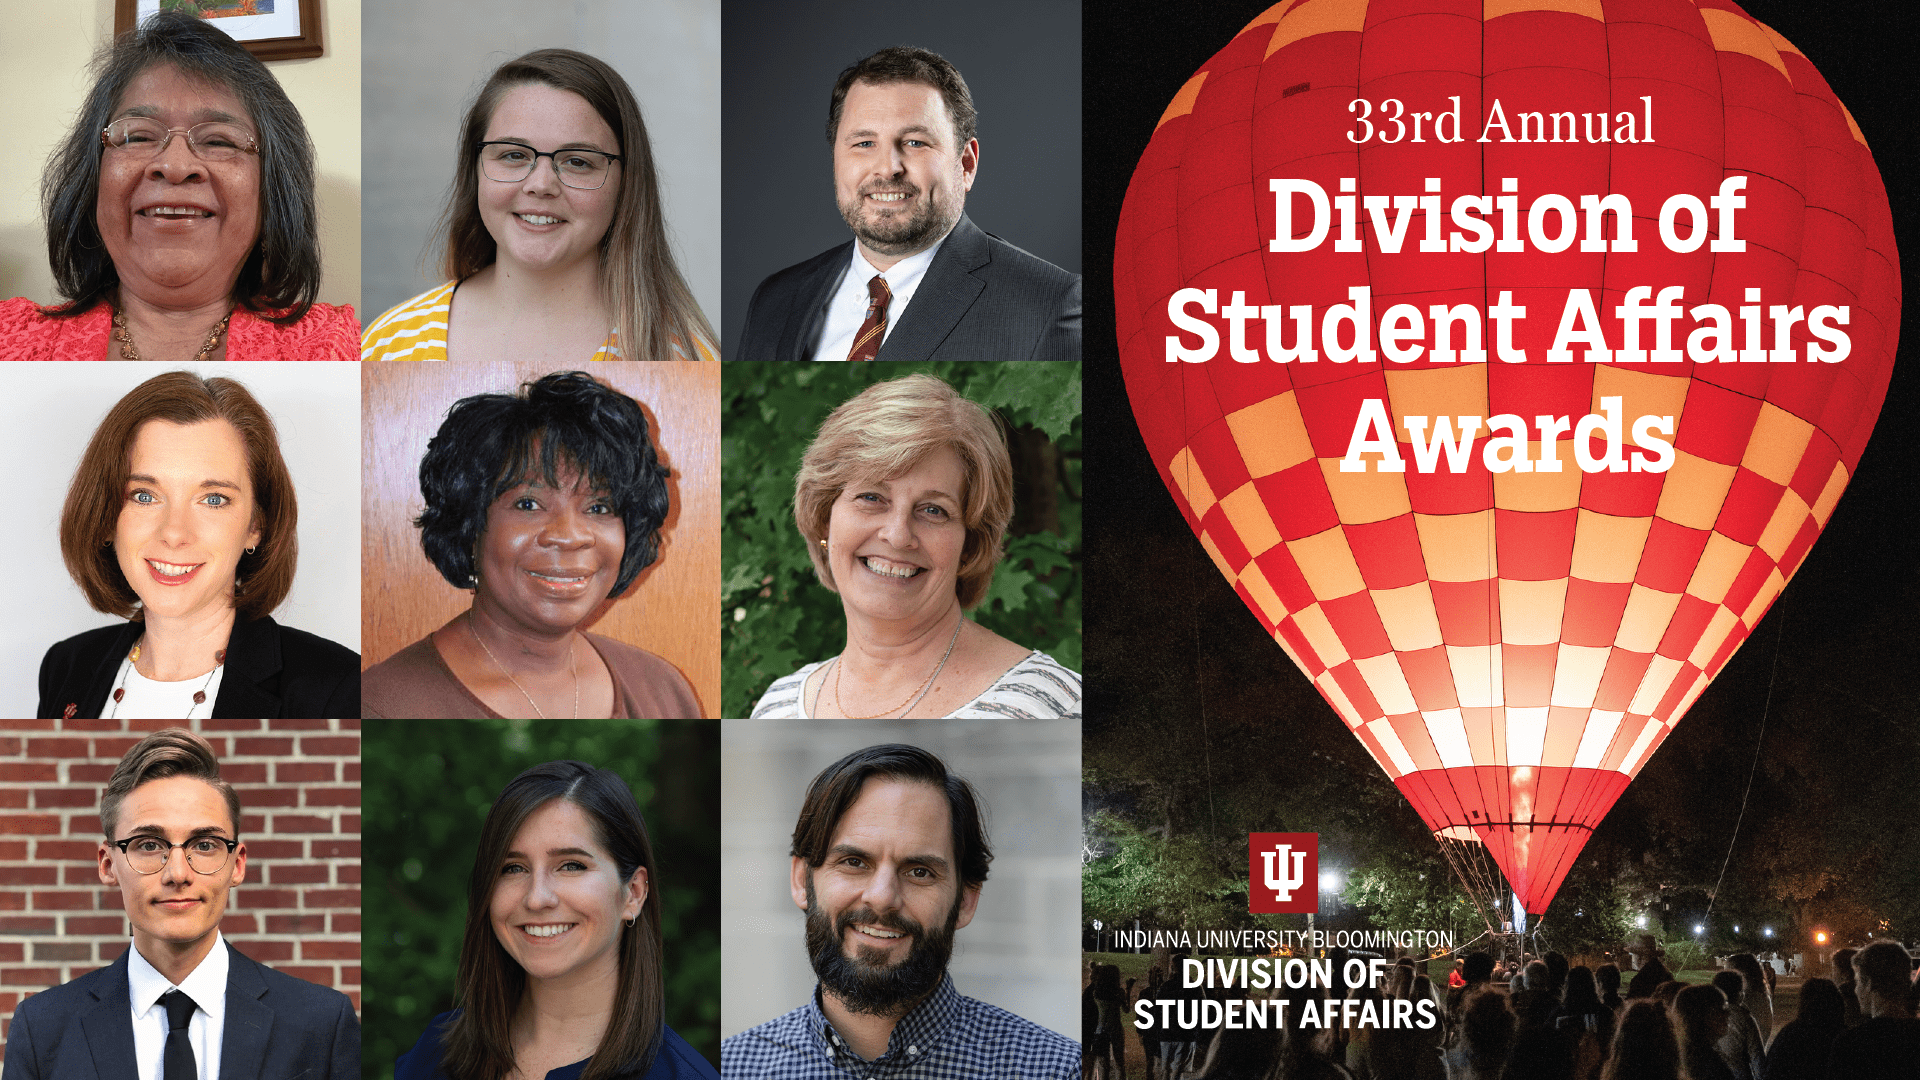 33rd Annual Division of Student Affairs Awards